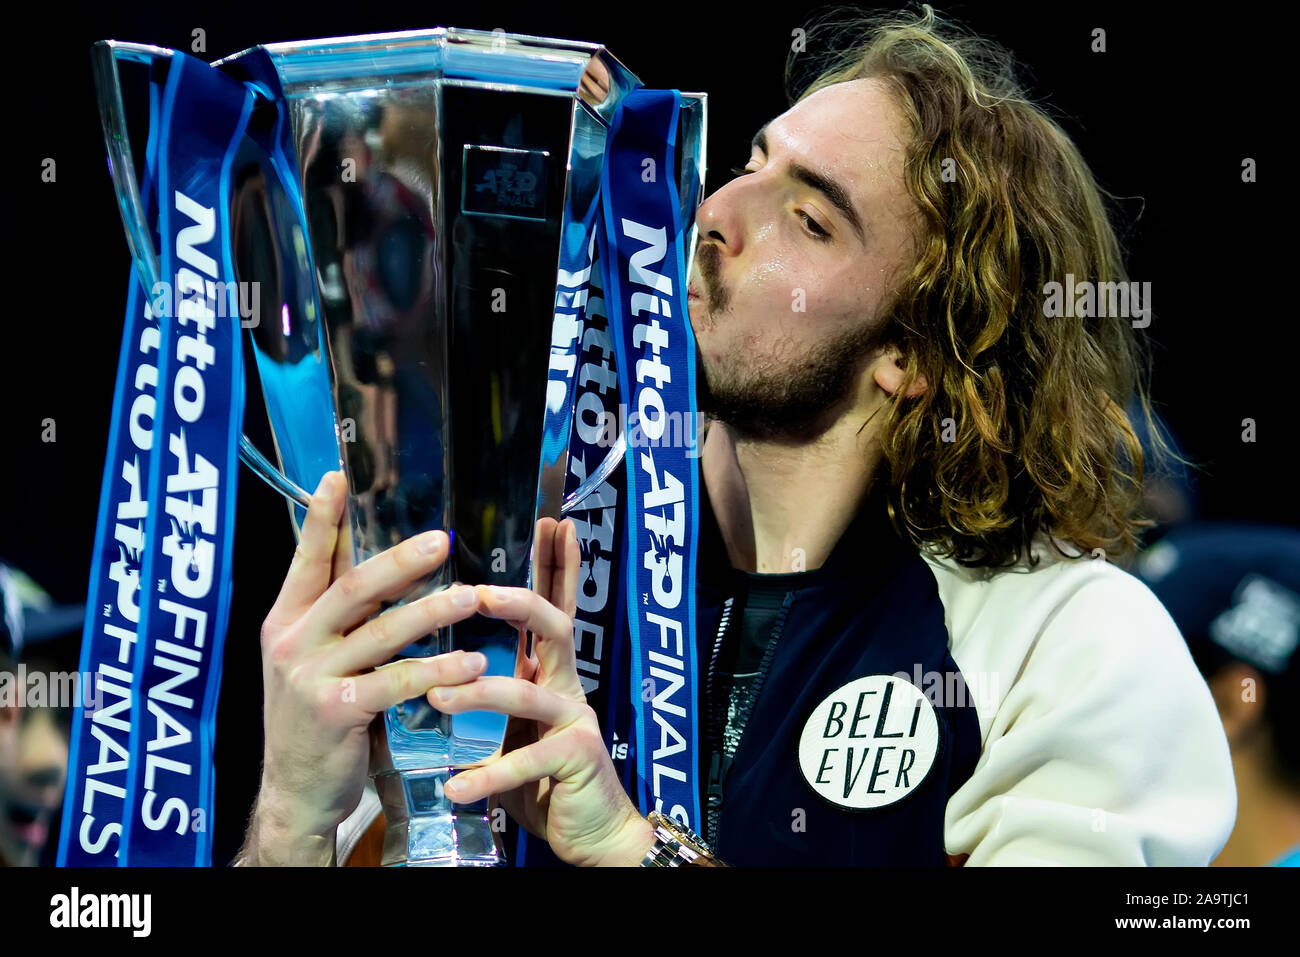 Arena. London, UK. 17th Nov, 2019. Nitto ATP Tennis Finals; Stefanos Tsitsipas (Greece) kisses the ATP trophy - Editorial Use Credit: Action Plus Sports/Alamy Live News Stock Photo